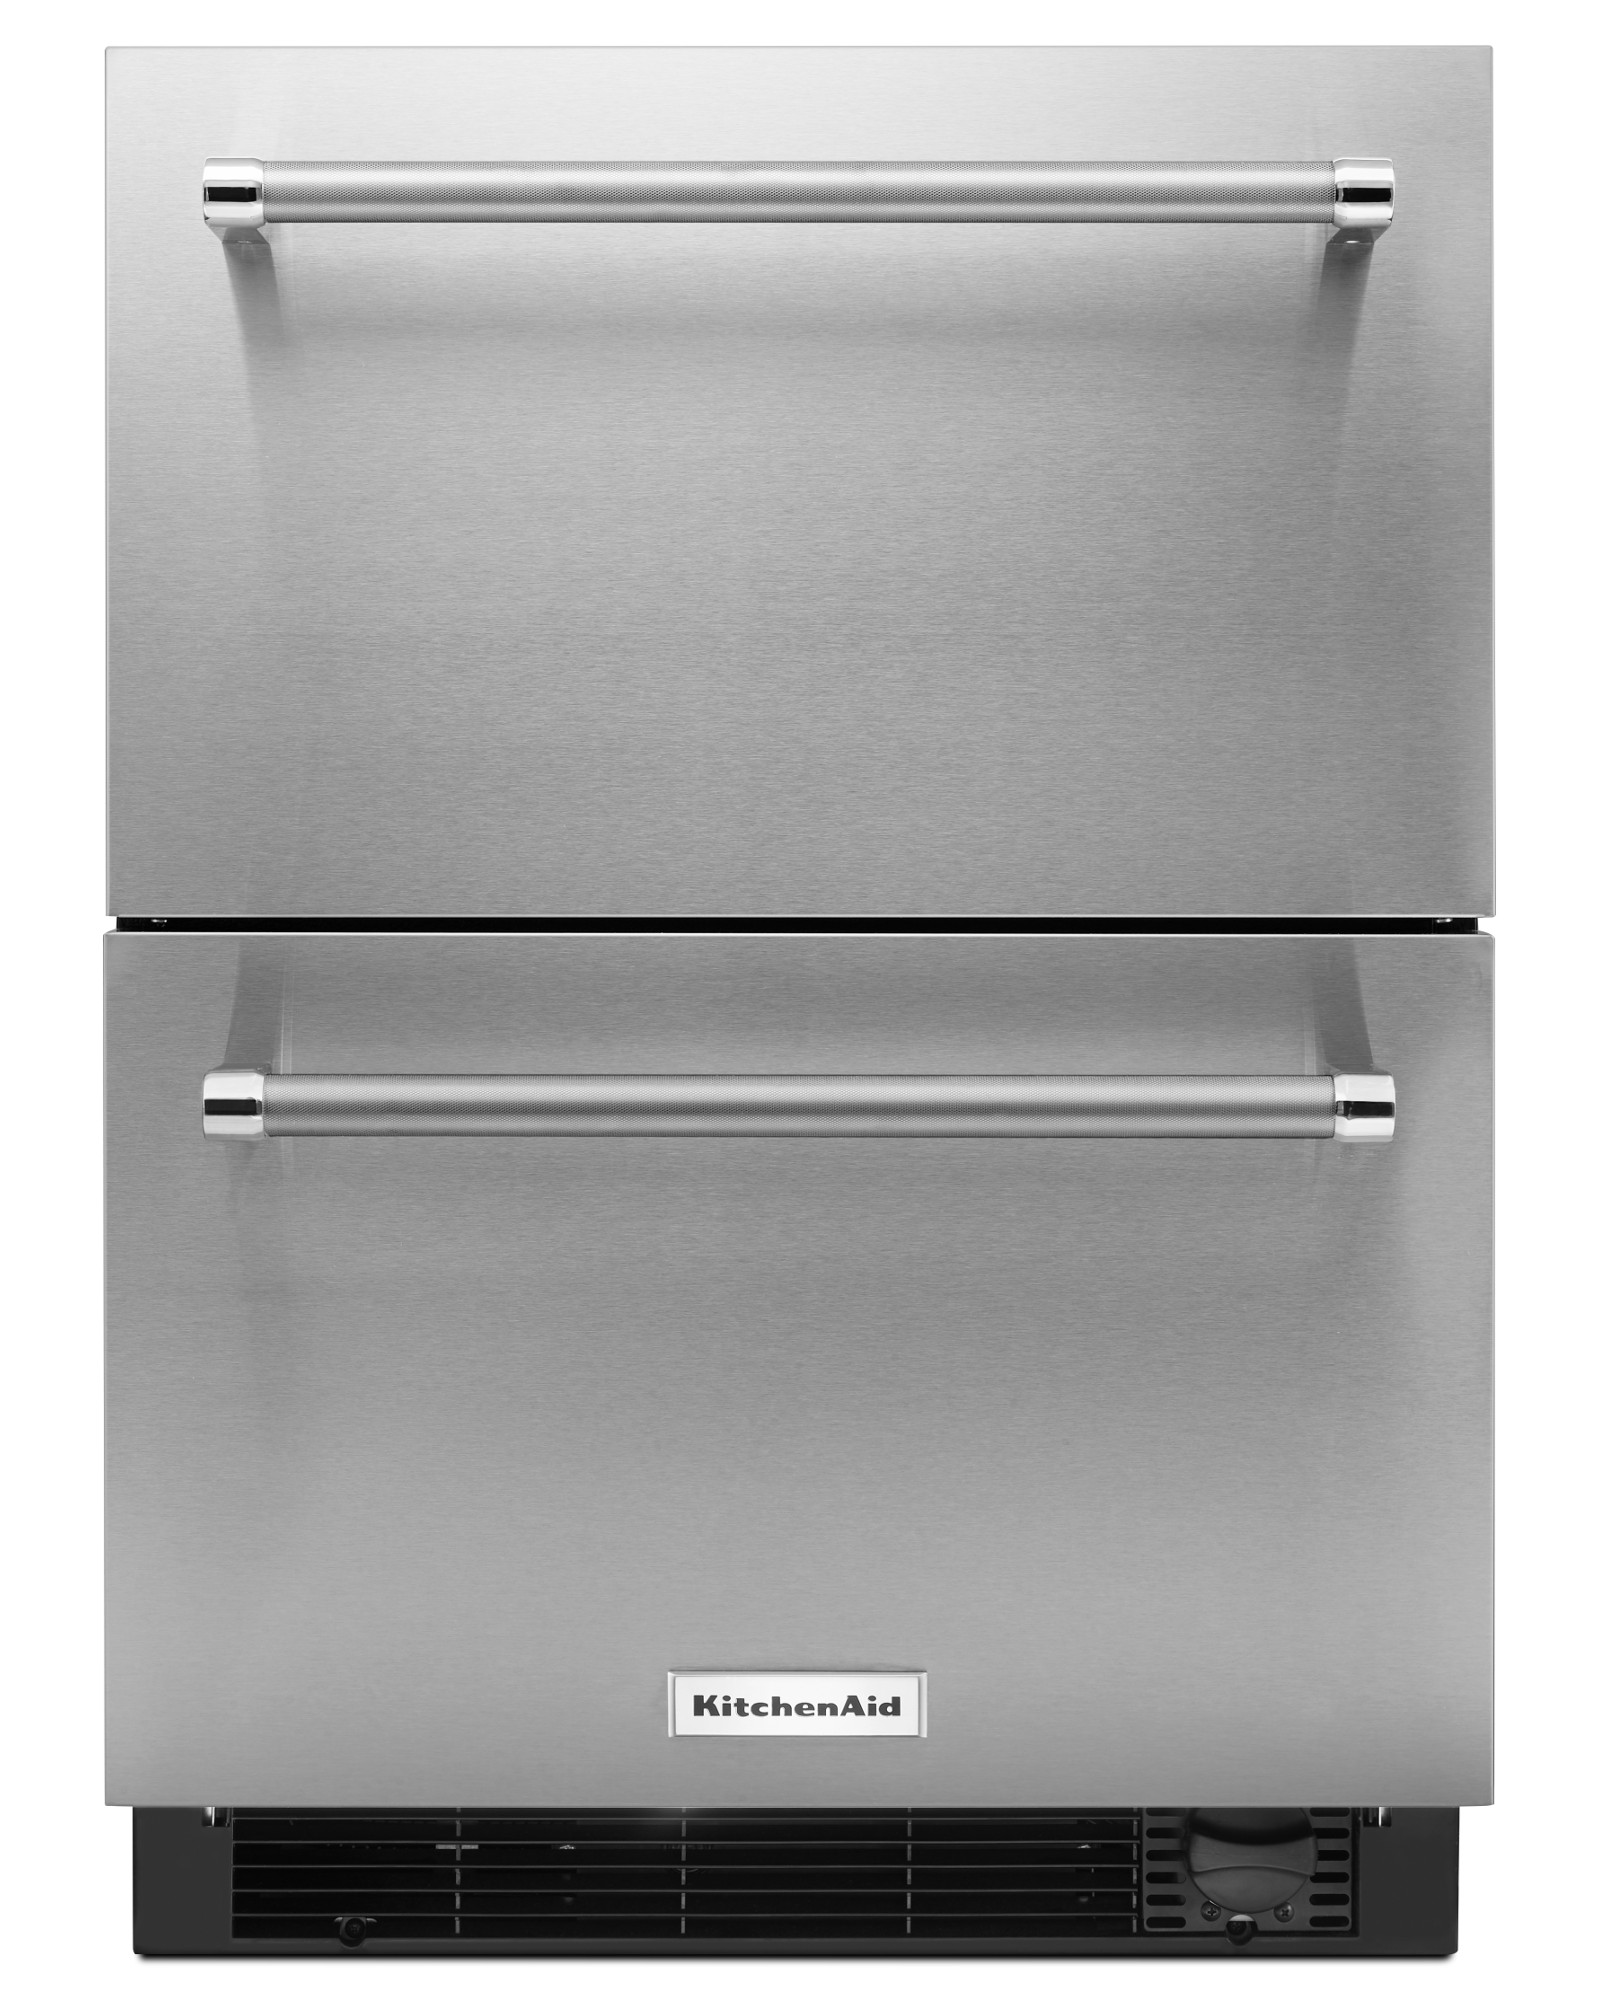 KitchenAid KUDF204ESB 4.7 cu. ft. Refrigerator/Freezer Drawer - Stainless Steel